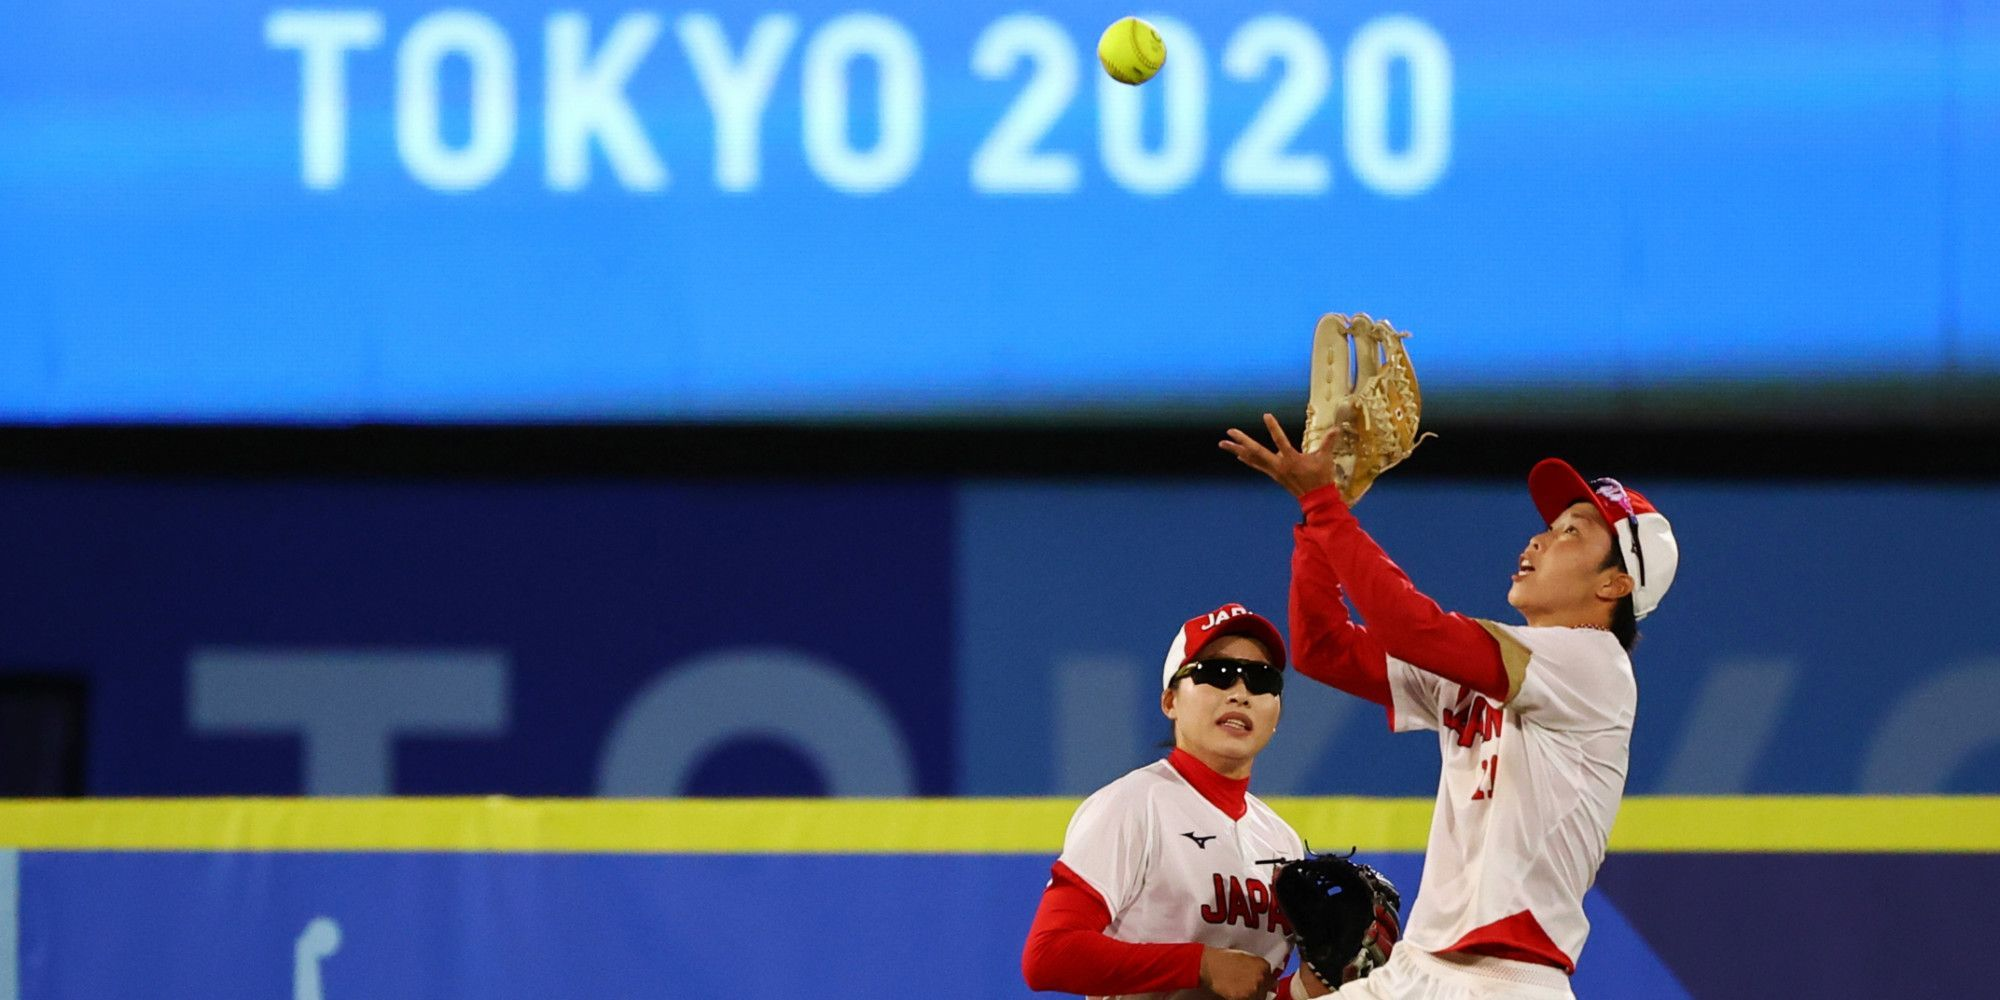 Softball final between Japan and the United States